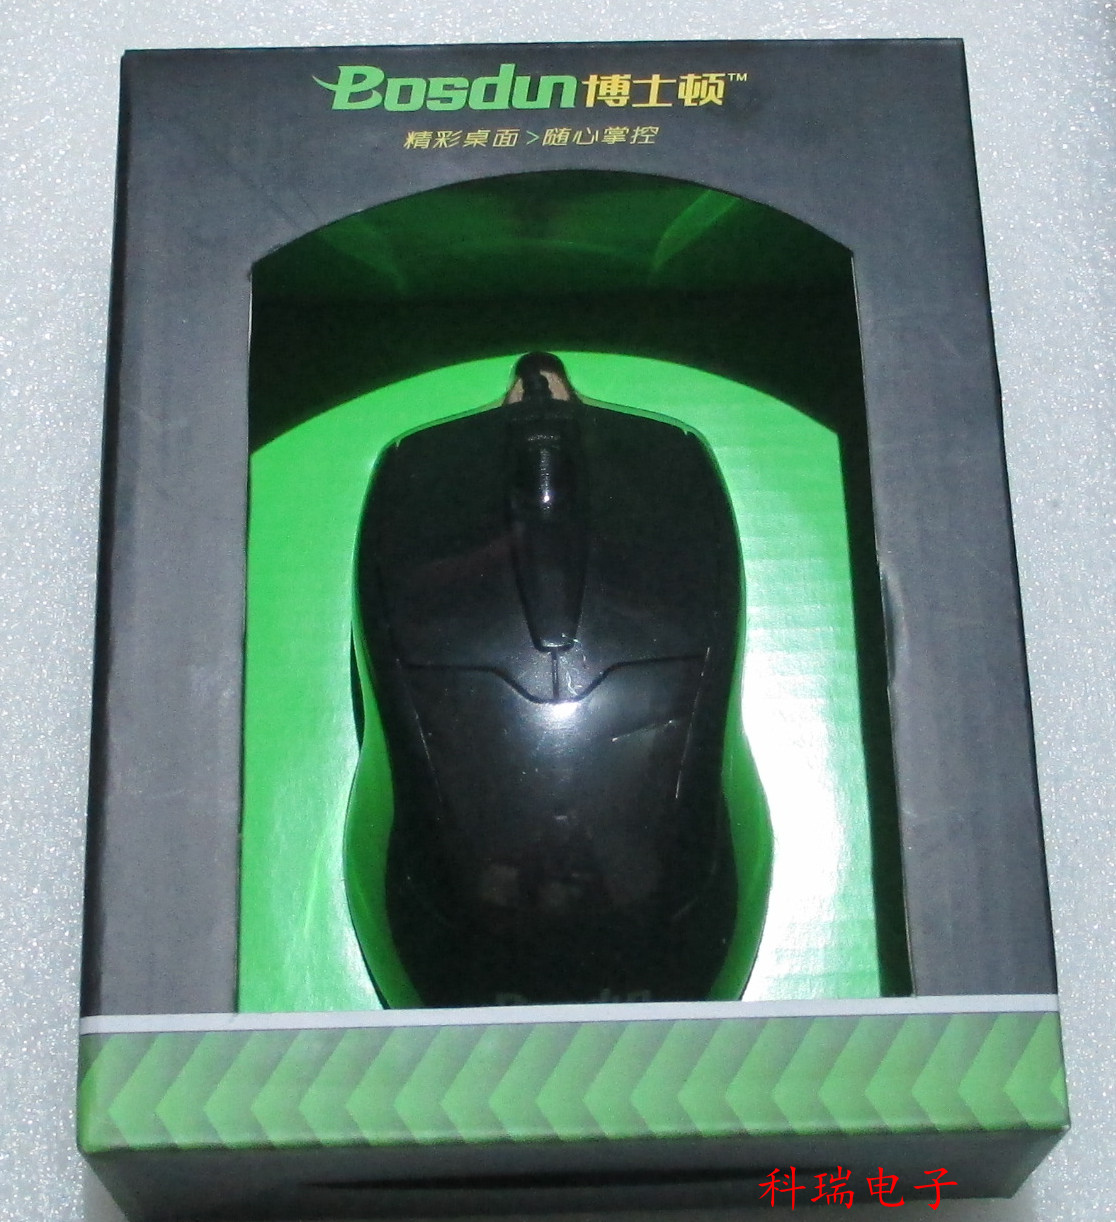 D605 big usb mouse excellent(China (Mainland))